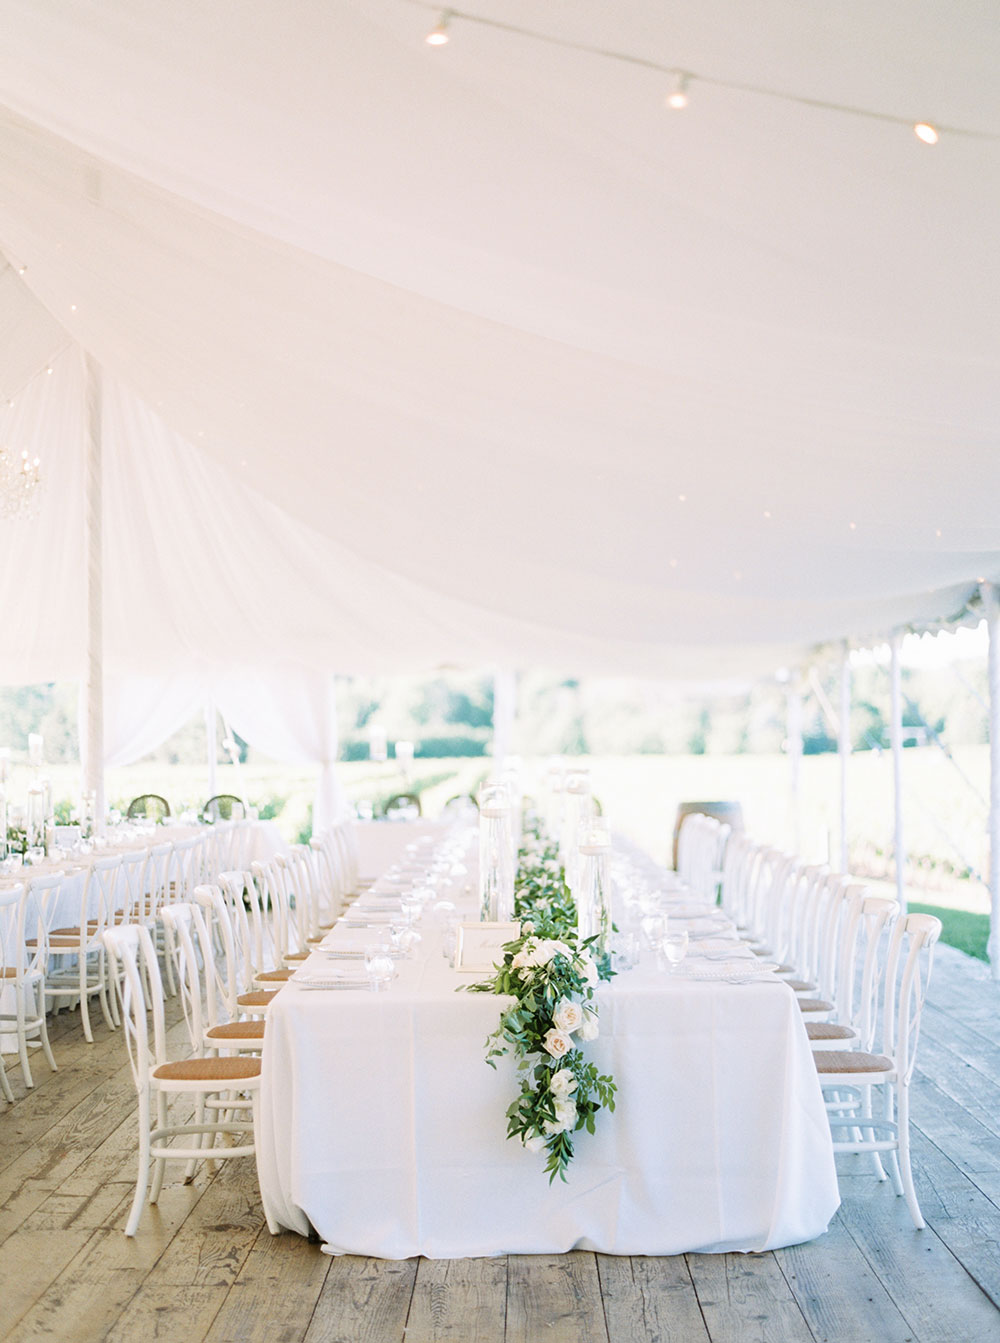 kurtz-orchards-wedding-gracewood-estate-niagara-on-the-lake-photo-by-katie-nicolle-photography-0074.JPG